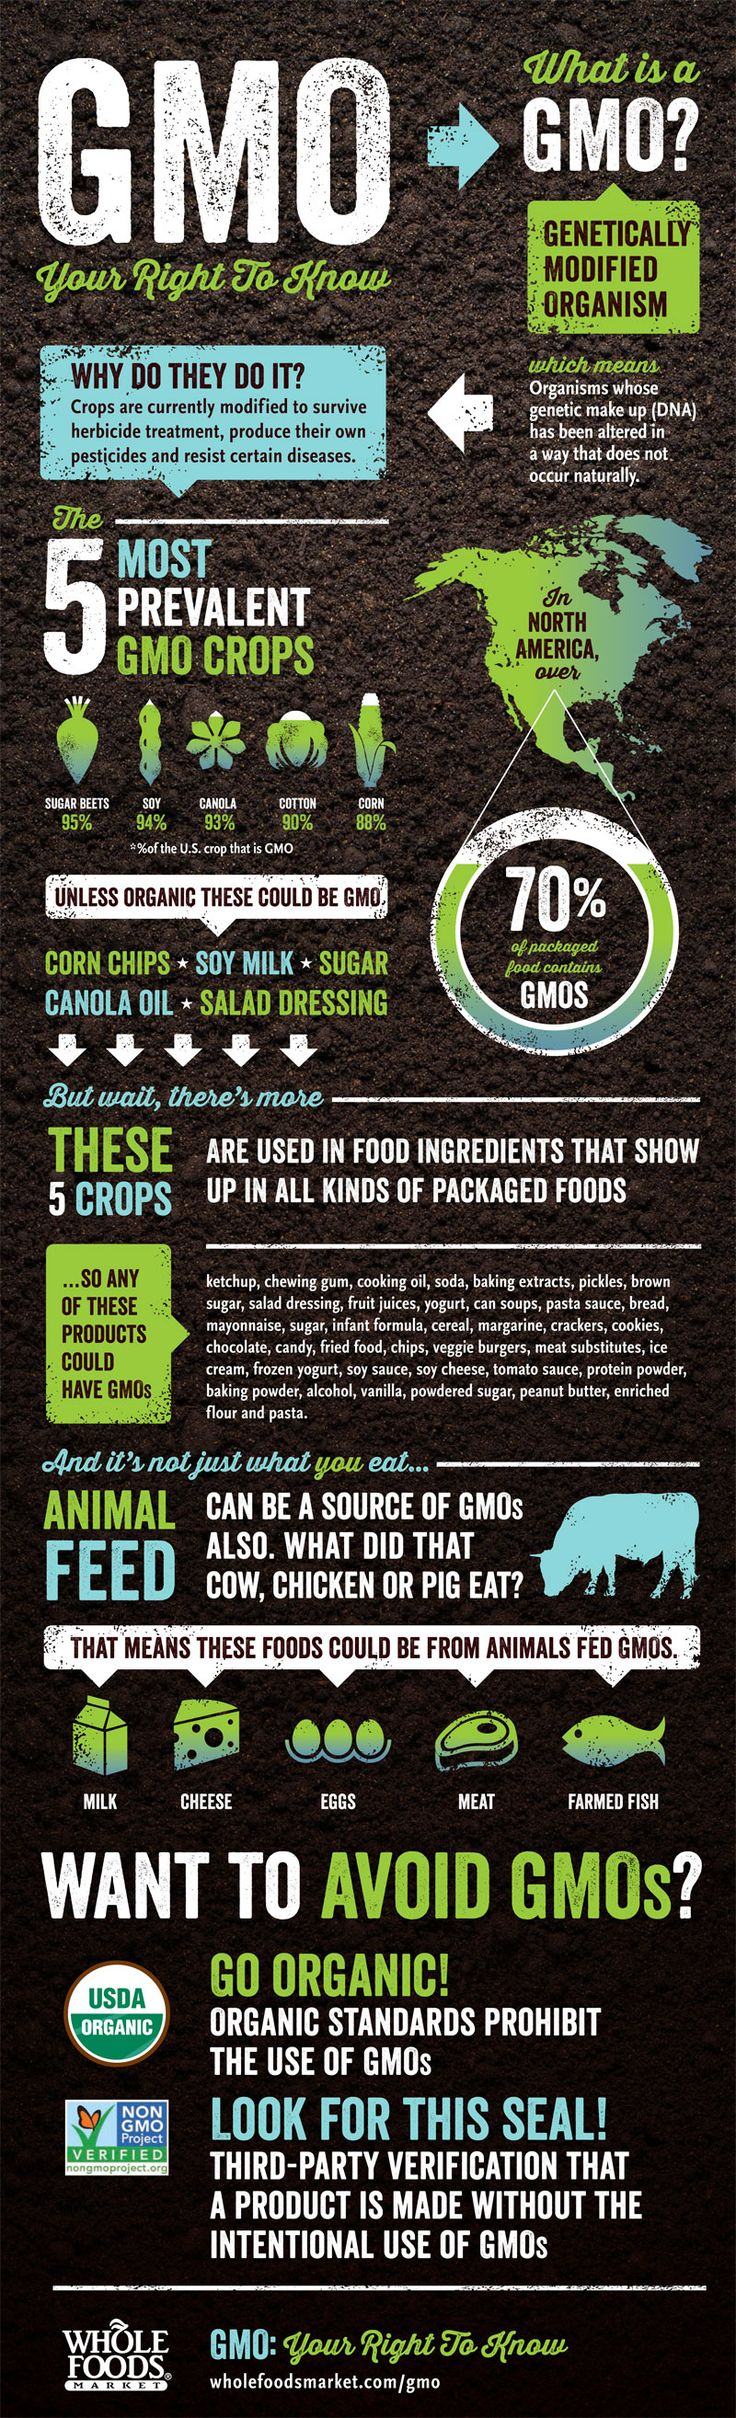 Saw a Food Inc documentary last night and seriously considering going vegetarian and organic...